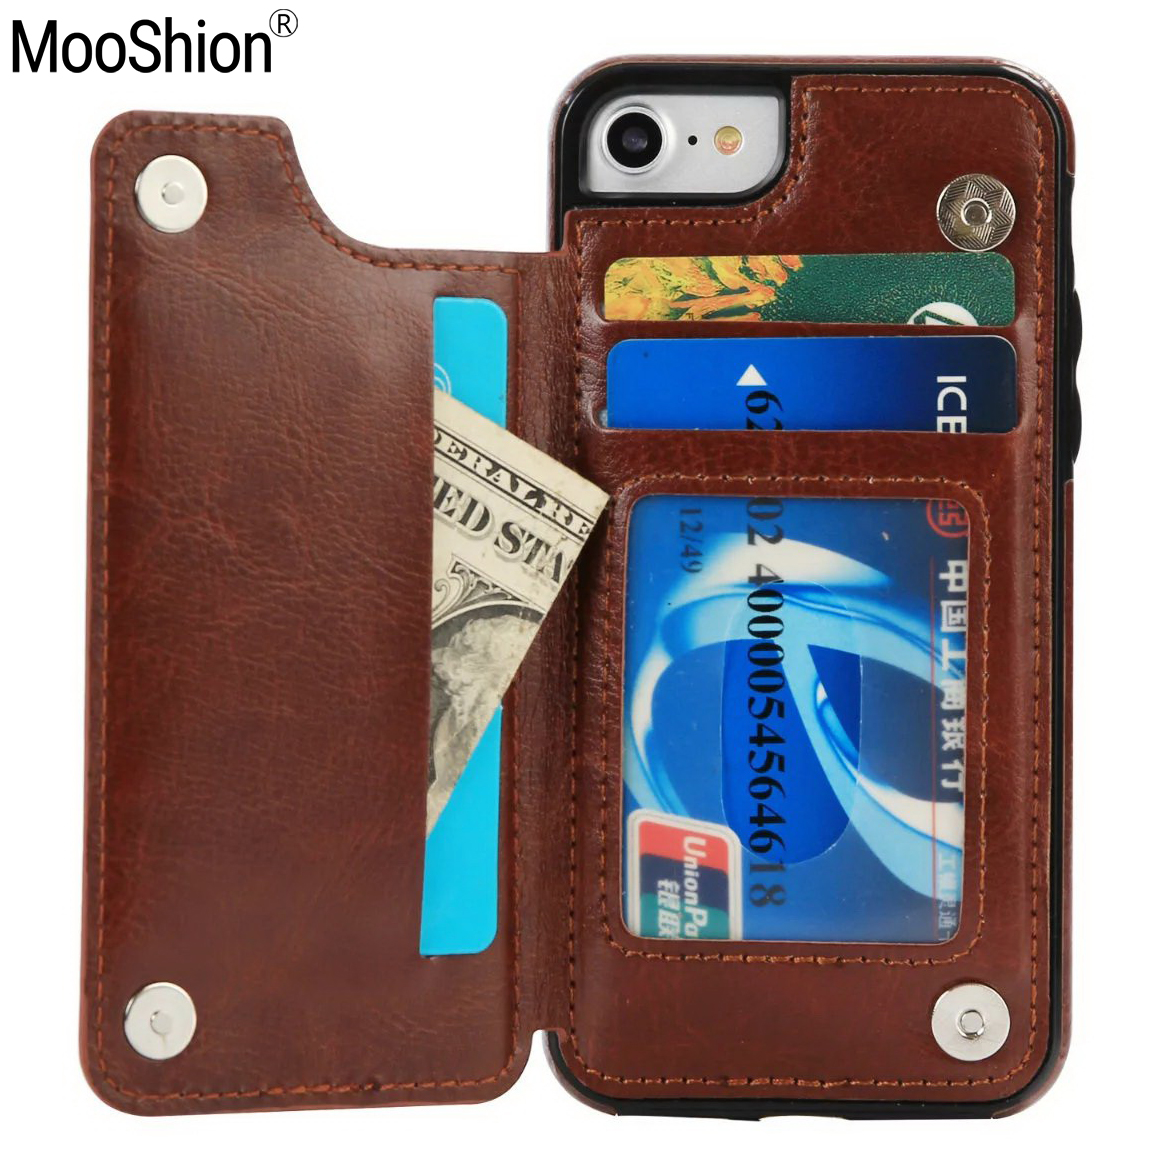 Mooshion Brand Phone Flip holder stand Luxury Leather Credit Card Pocket Wallet Pouch Cover for iPhone 7 7Plus 6s 6 6Plus